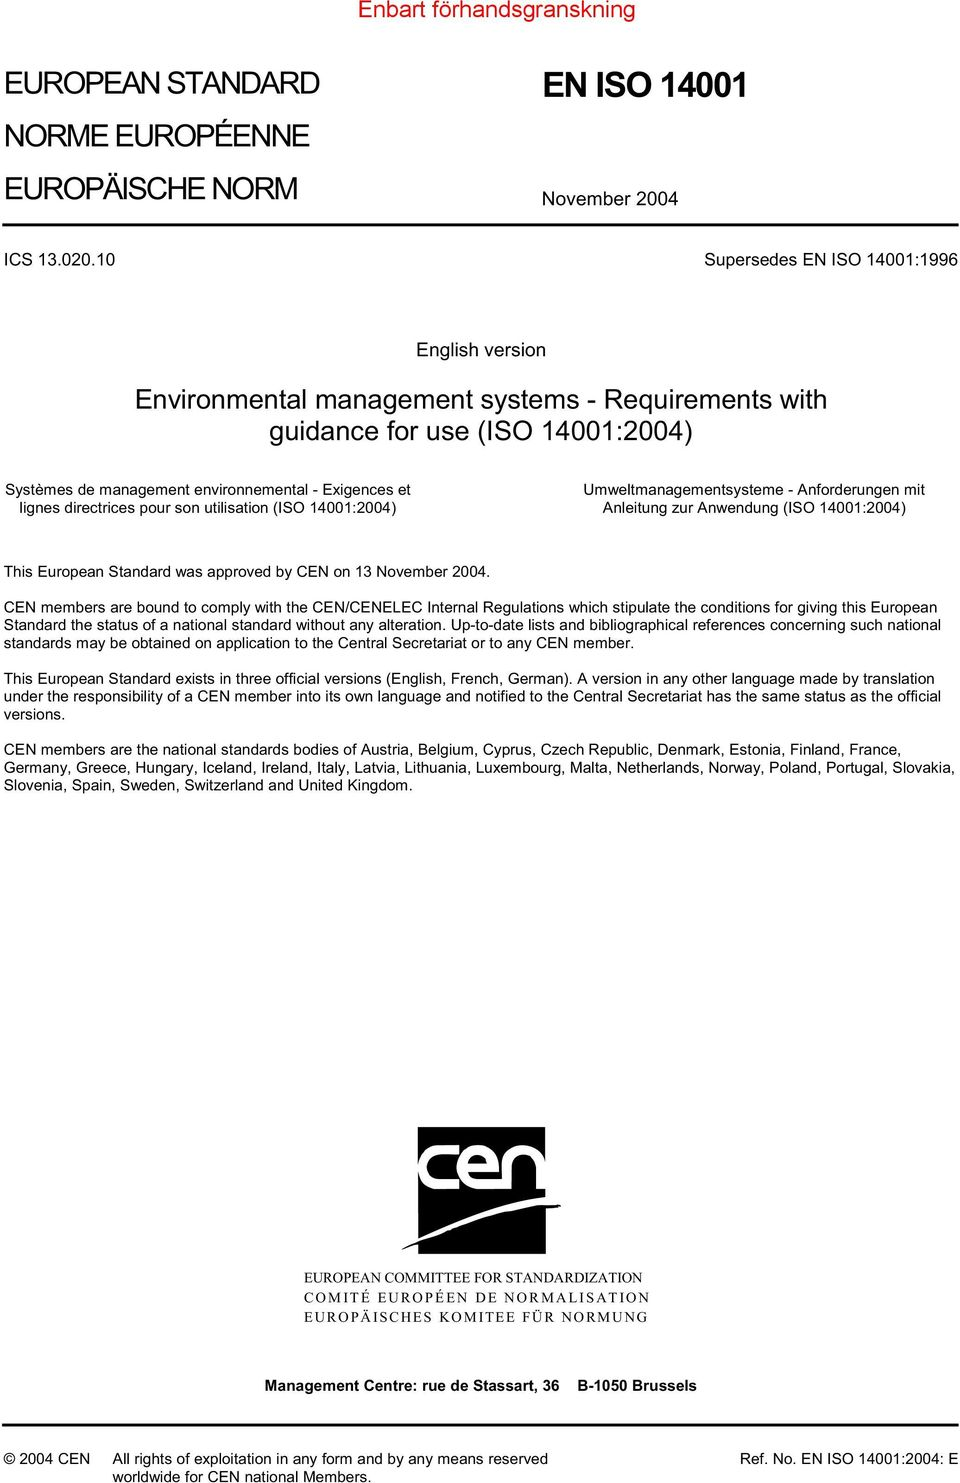 directrices pour son utilisation (ISO 14001:2004) Umweltmanagementsysteme - Anforderungen mit Anleitung zur Anwendung (ISO 14001:2004) This European Standard was approved by CEN on 13 November 2004.